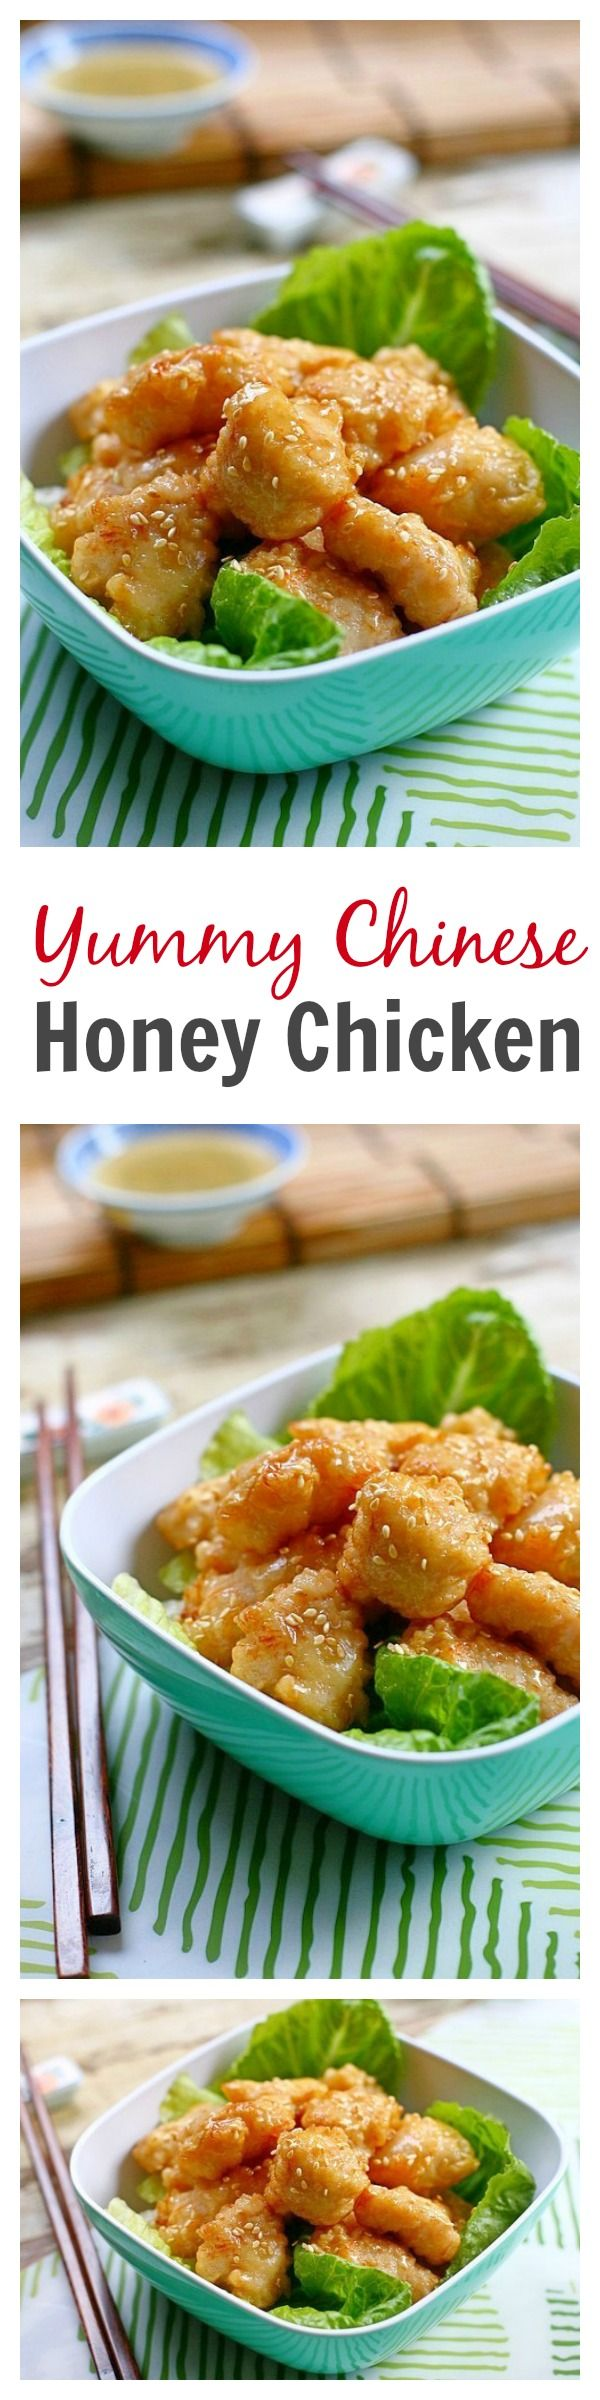 Super yummy Chinese honey chicken. Crispy chicken pieces coated with sweet and sticky honey sauce. To-die-for recipe that you can make at home @rasamalaysia